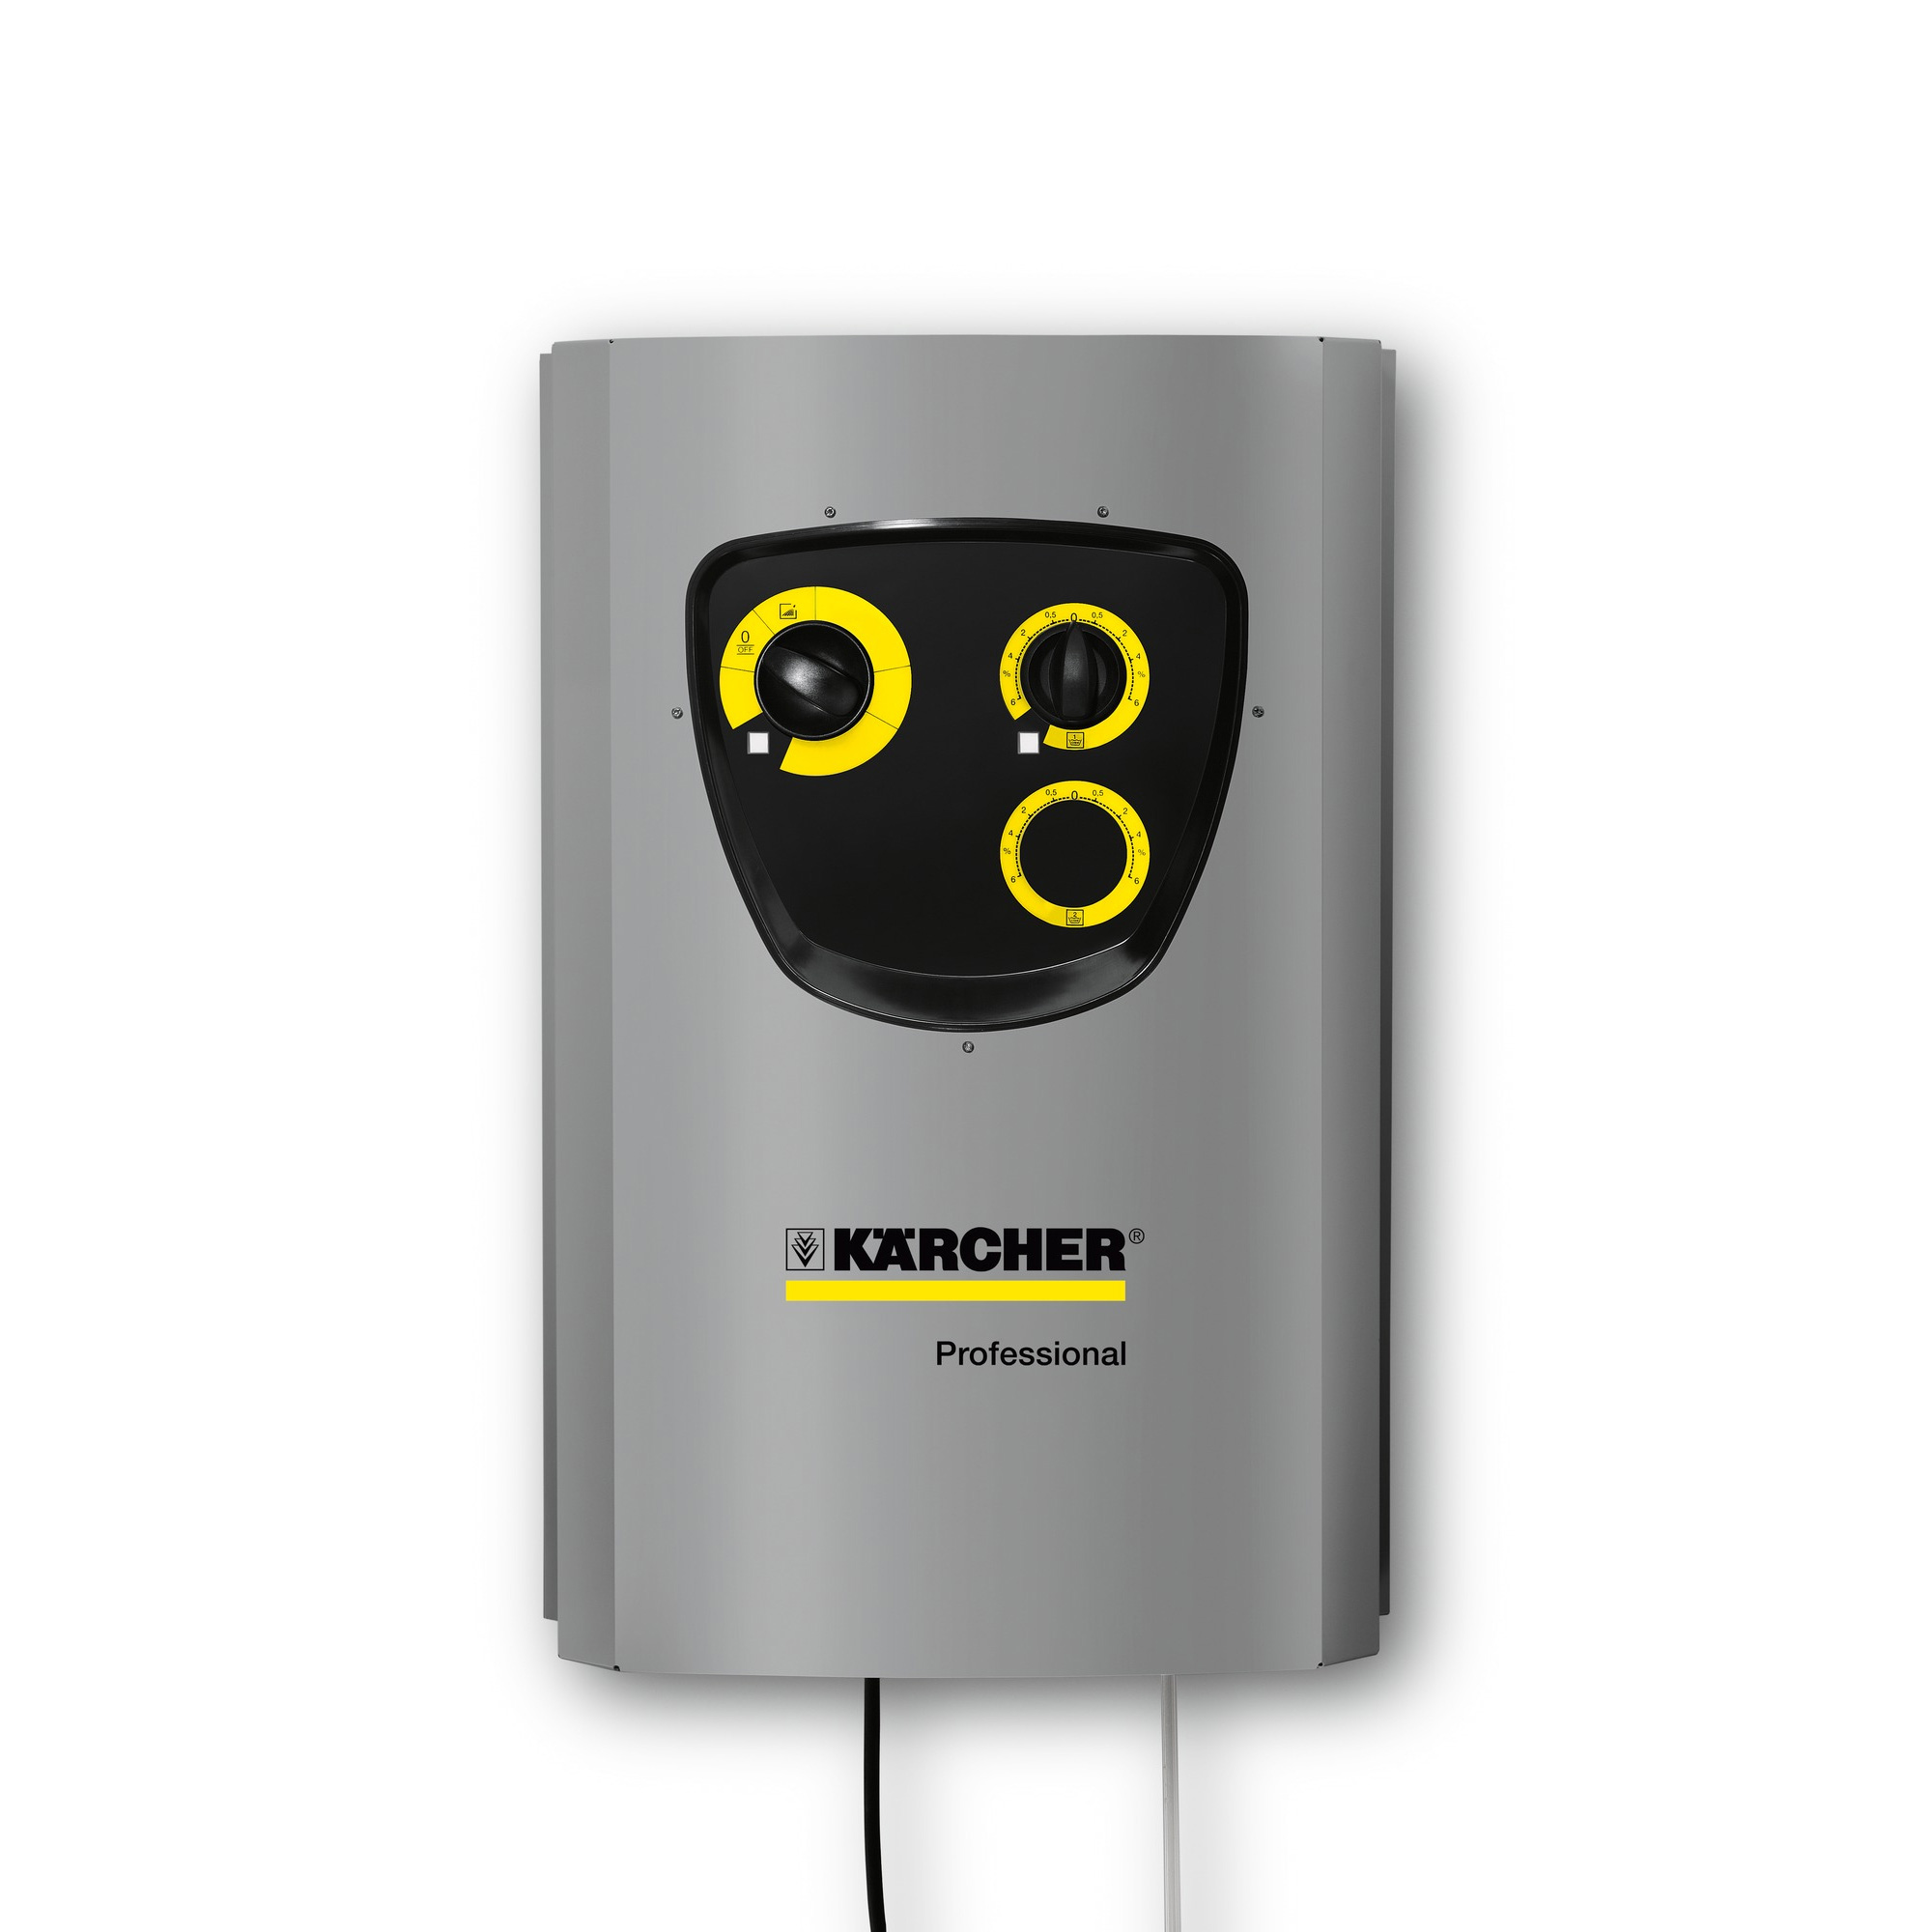 Karcher HD 7/16-4 ST  Picture similar